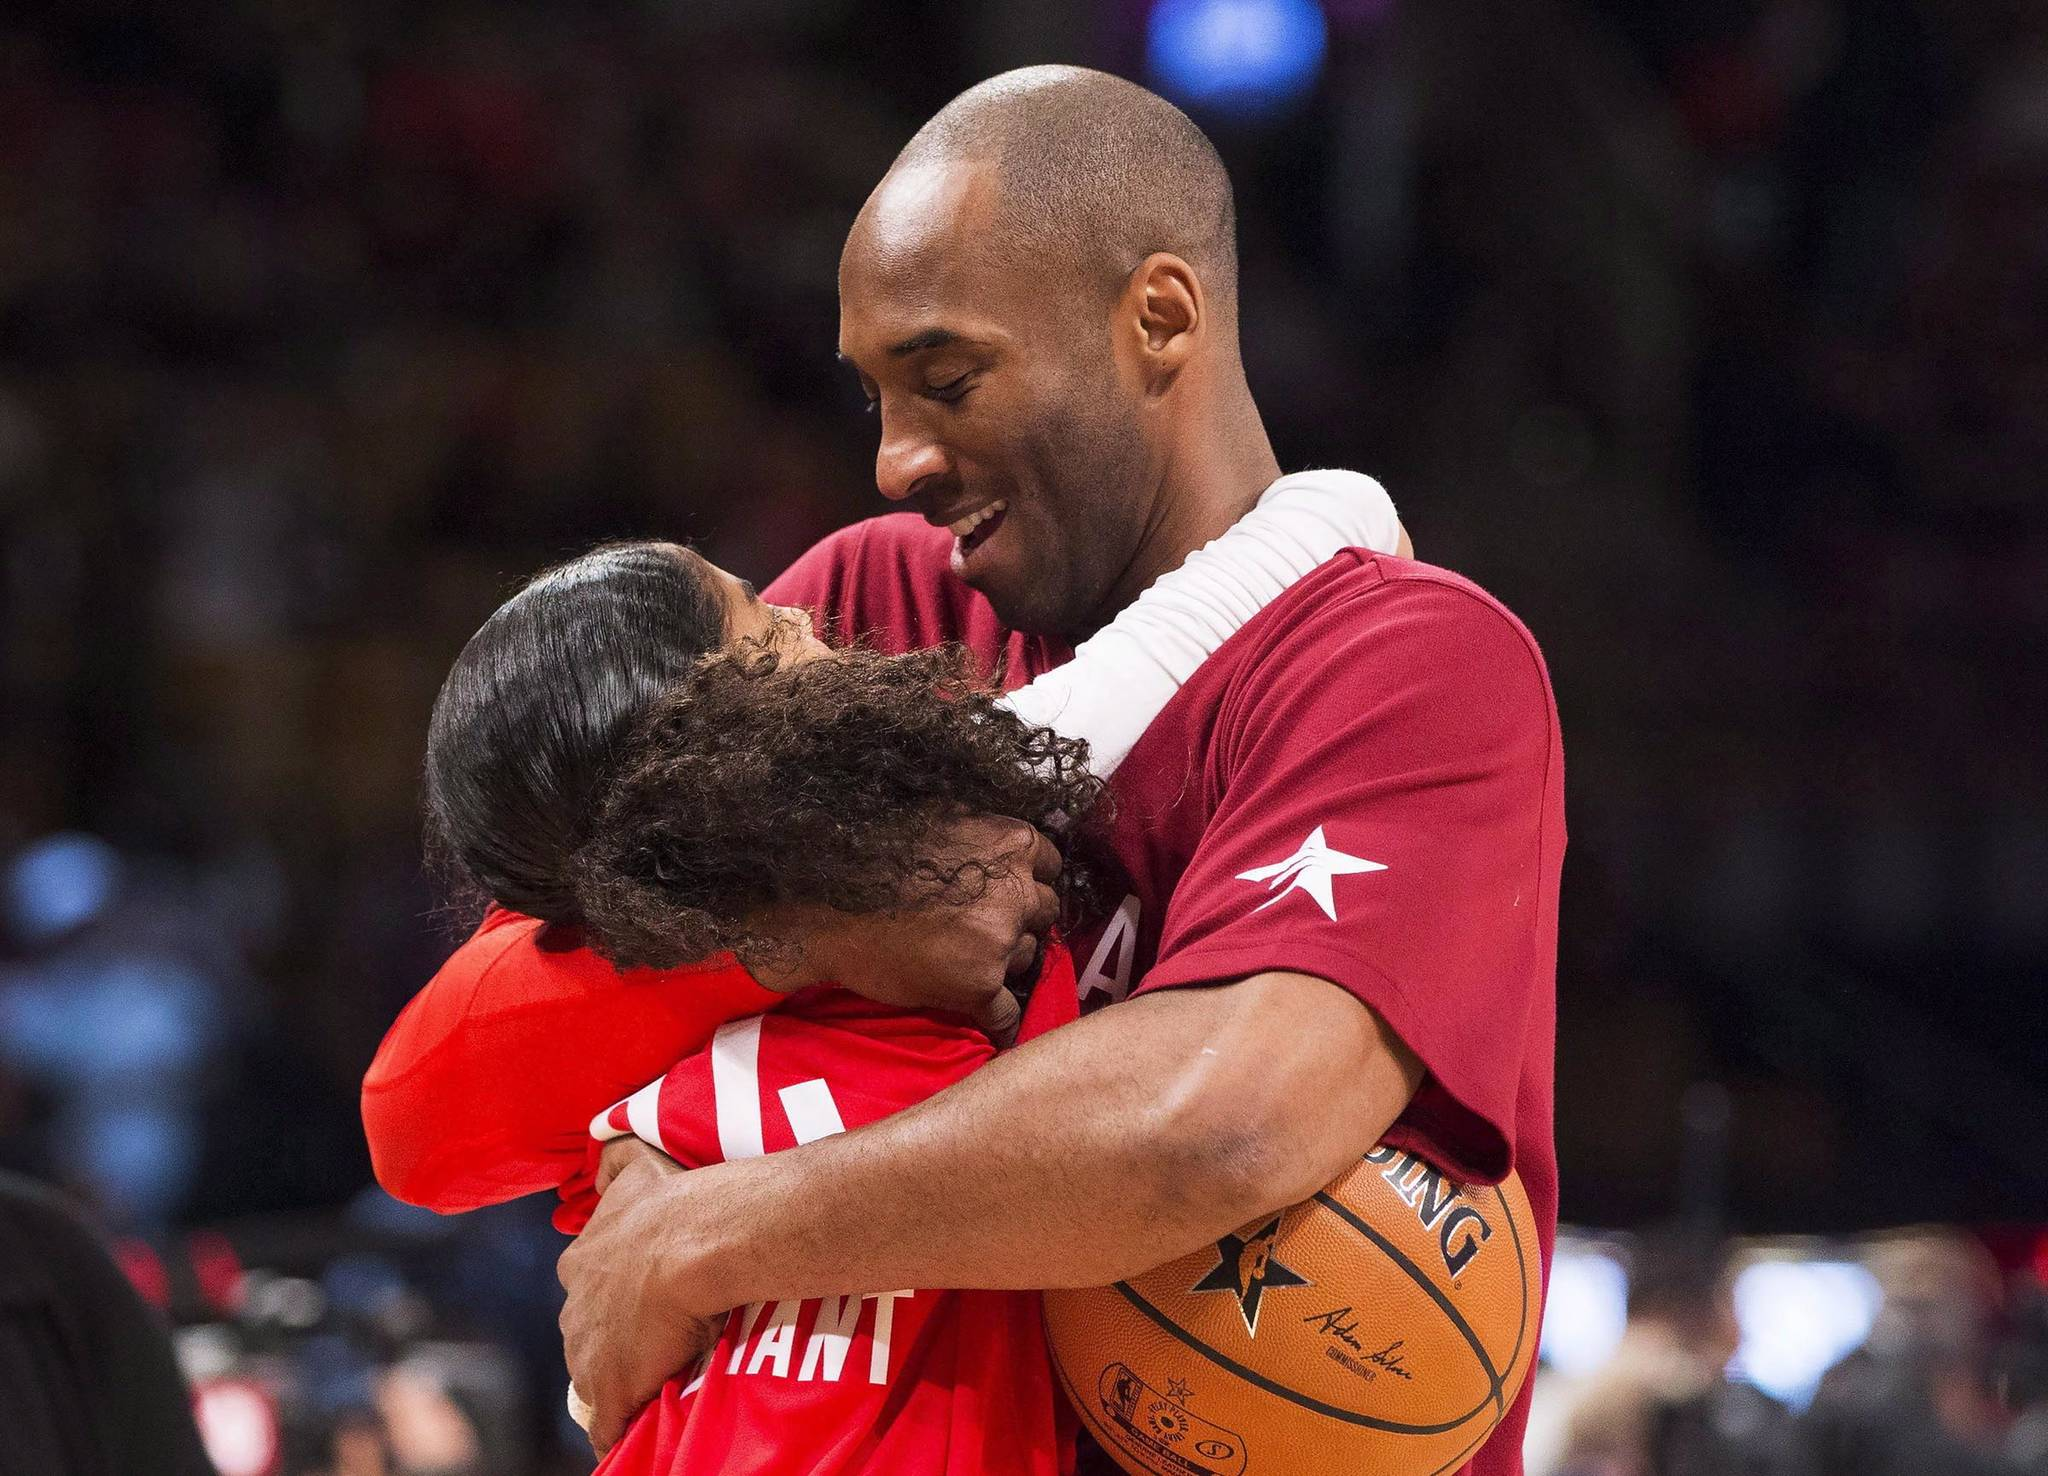 In this Feb. 14, 2016, file photo, Los Angeles Lakers Kobe Bryant (24) hugs his daughter Gianna on the court in warm-ups before first half NBA All-Star Game basketball action in Toronto. Bryant, his 13-year-old daughter, Gianna, and several others are dead after their helicopter went down in Southern California on Sunday, Jan. 26, 2020. (Mark Blinch | The Canadian Press via AP)